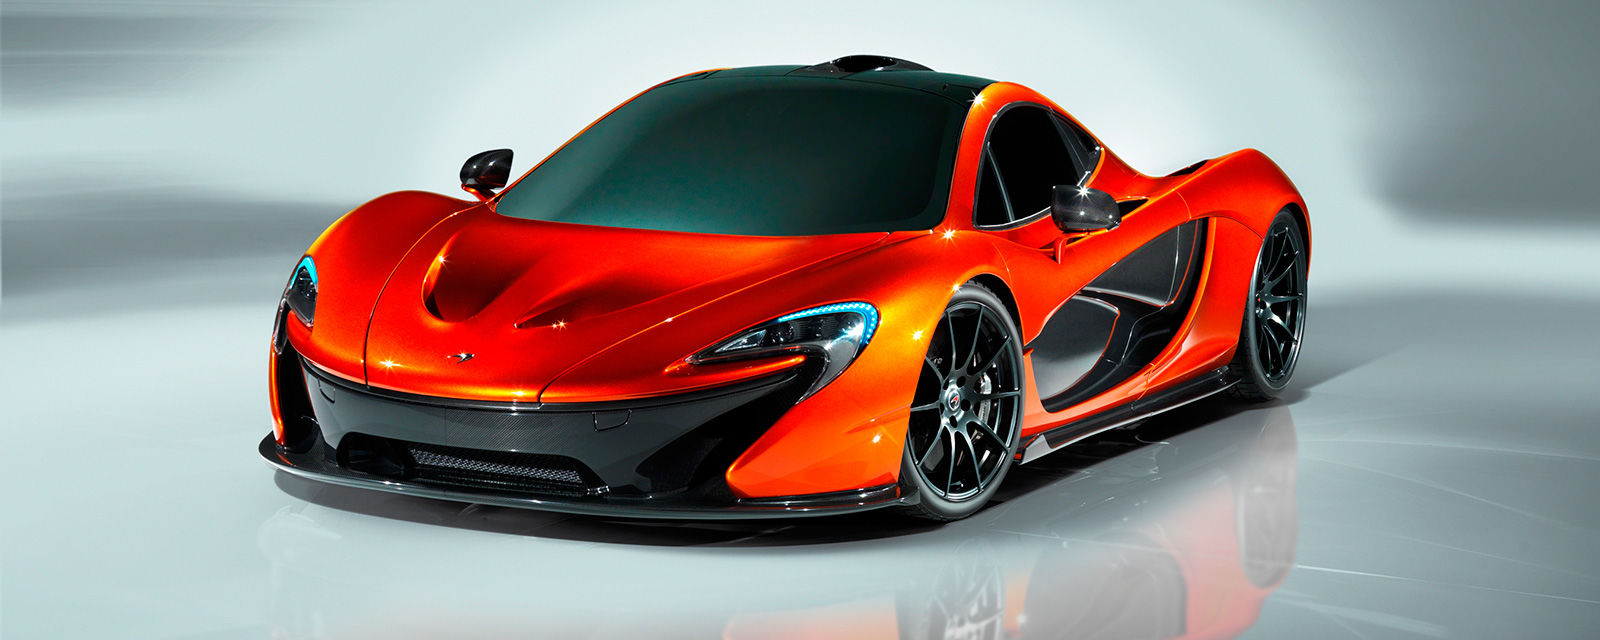 Car paint colour - This Colour Is Offered Across Mclaren S Range But When Matched With Its Craziest Hypercar The P1 You Can T Help But Look At It